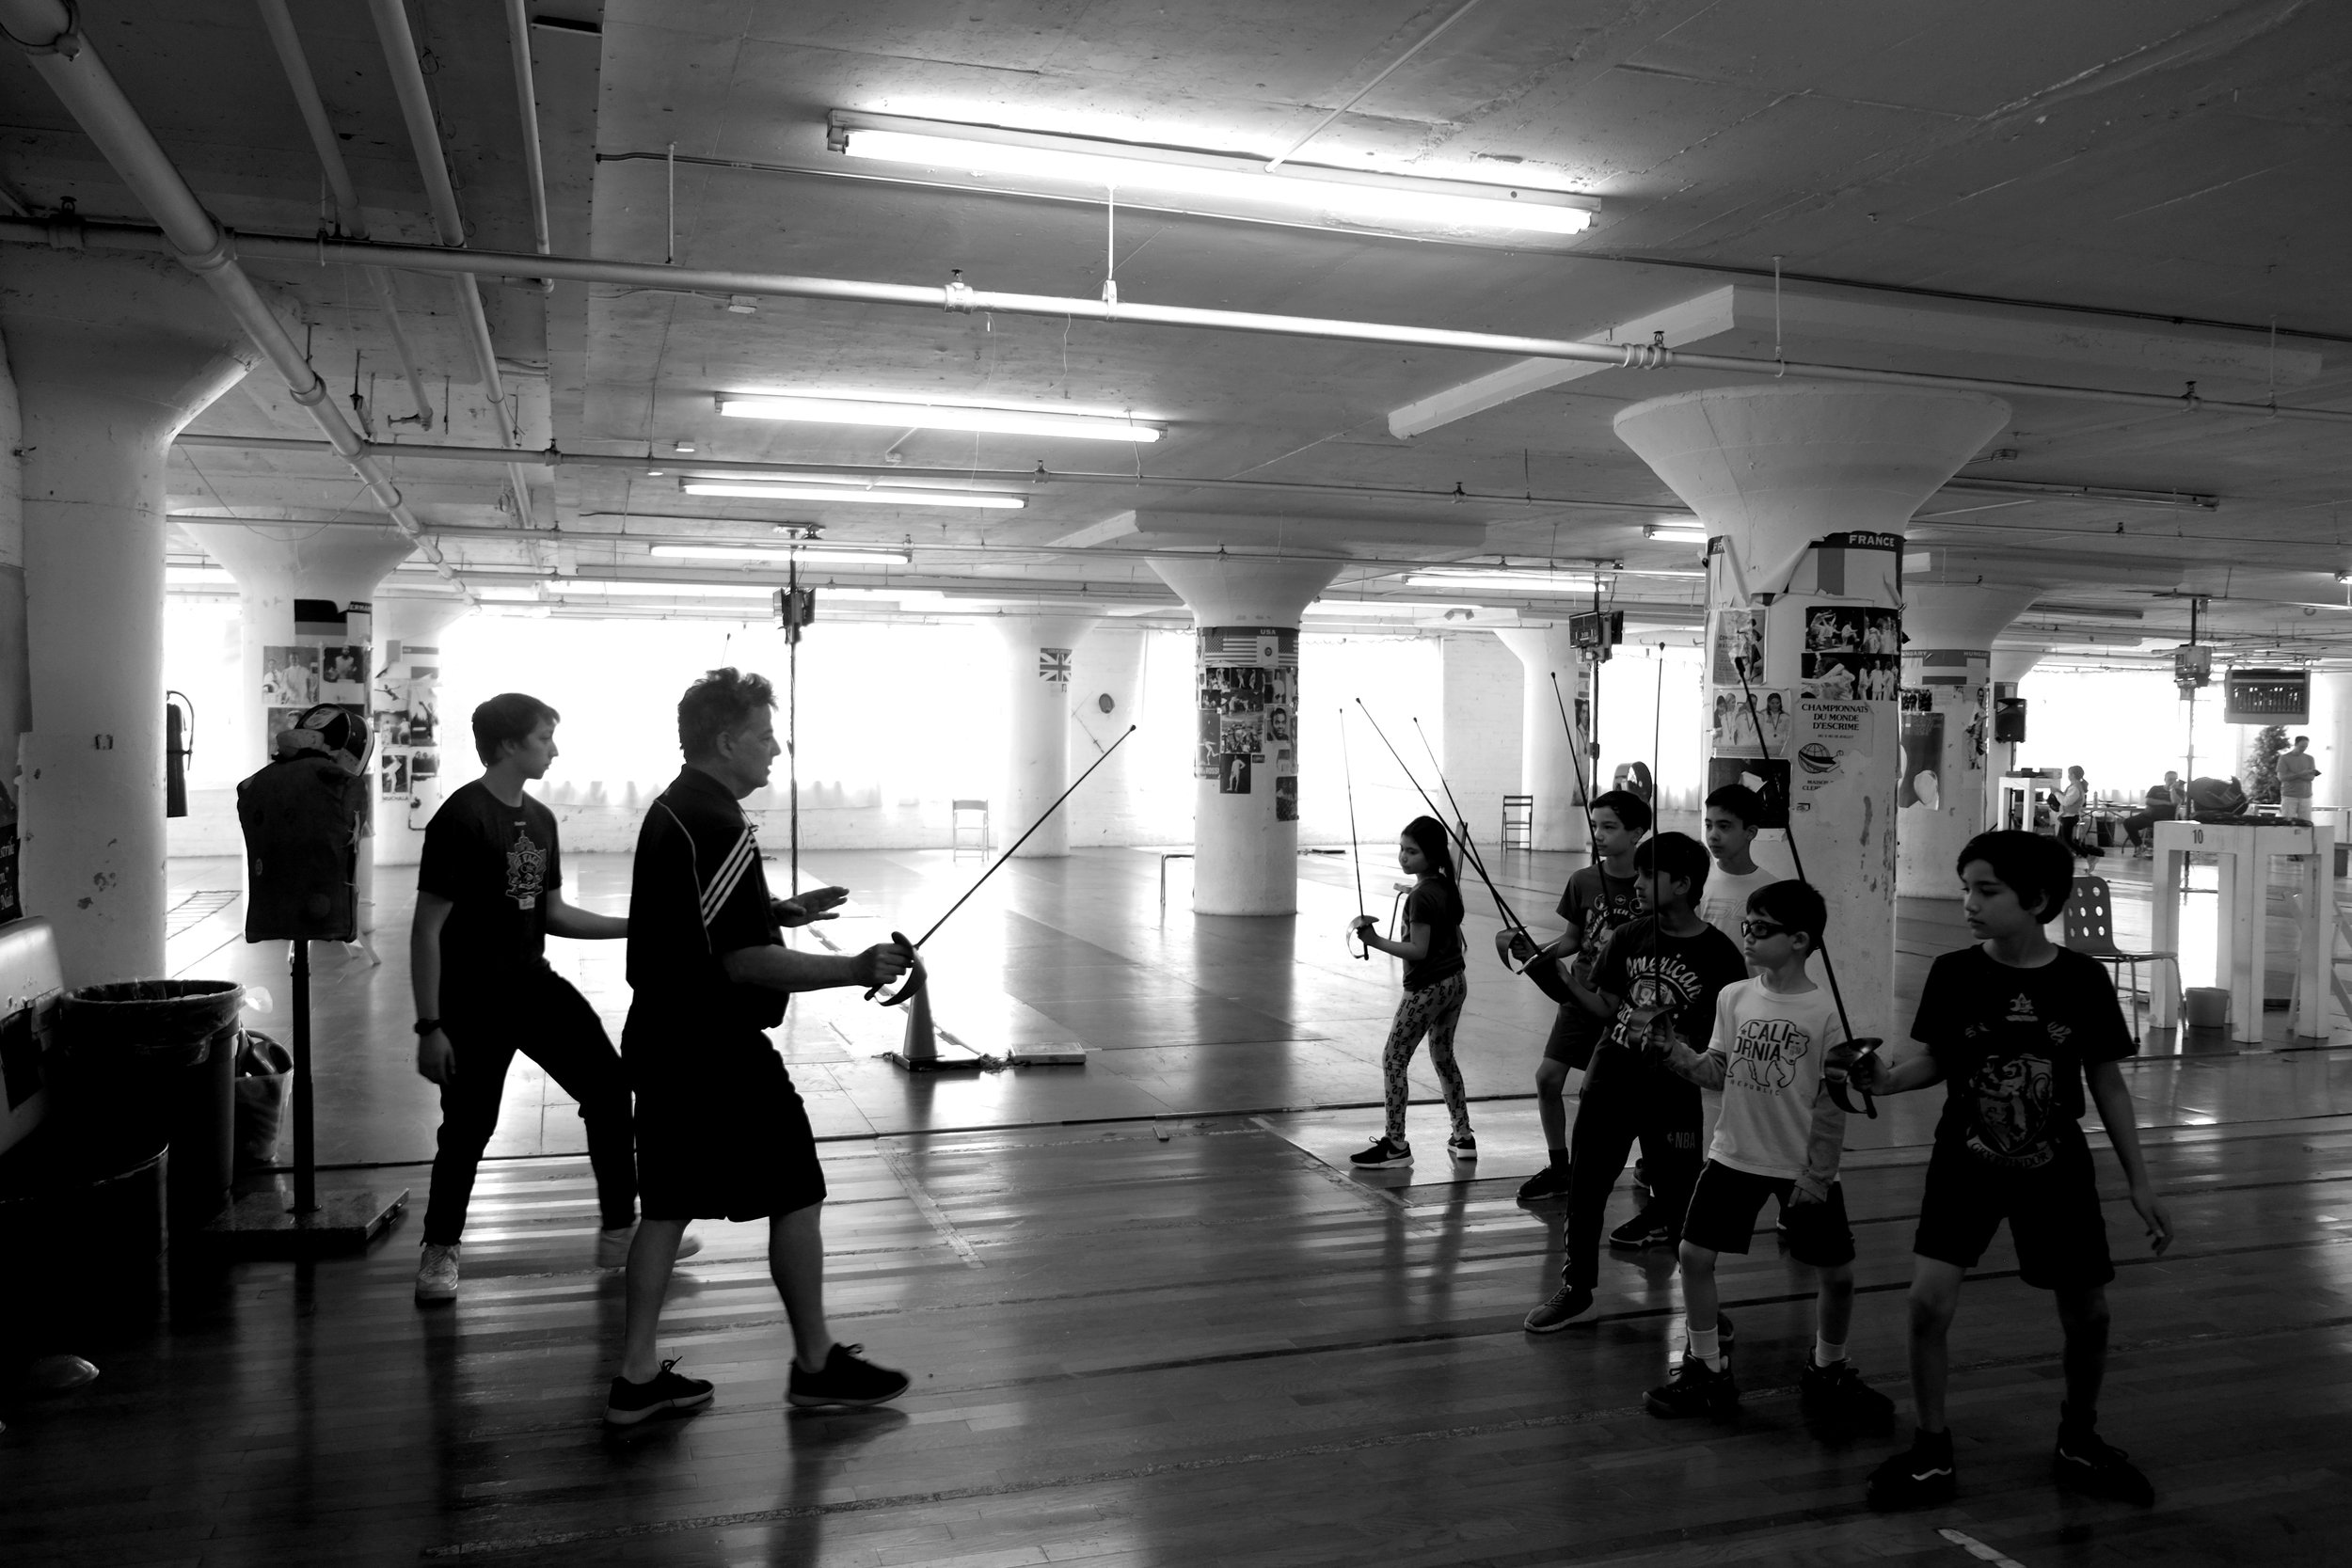 Steve Kaplan teaching at Cobra Fencing Club photographed by Debra Scherer